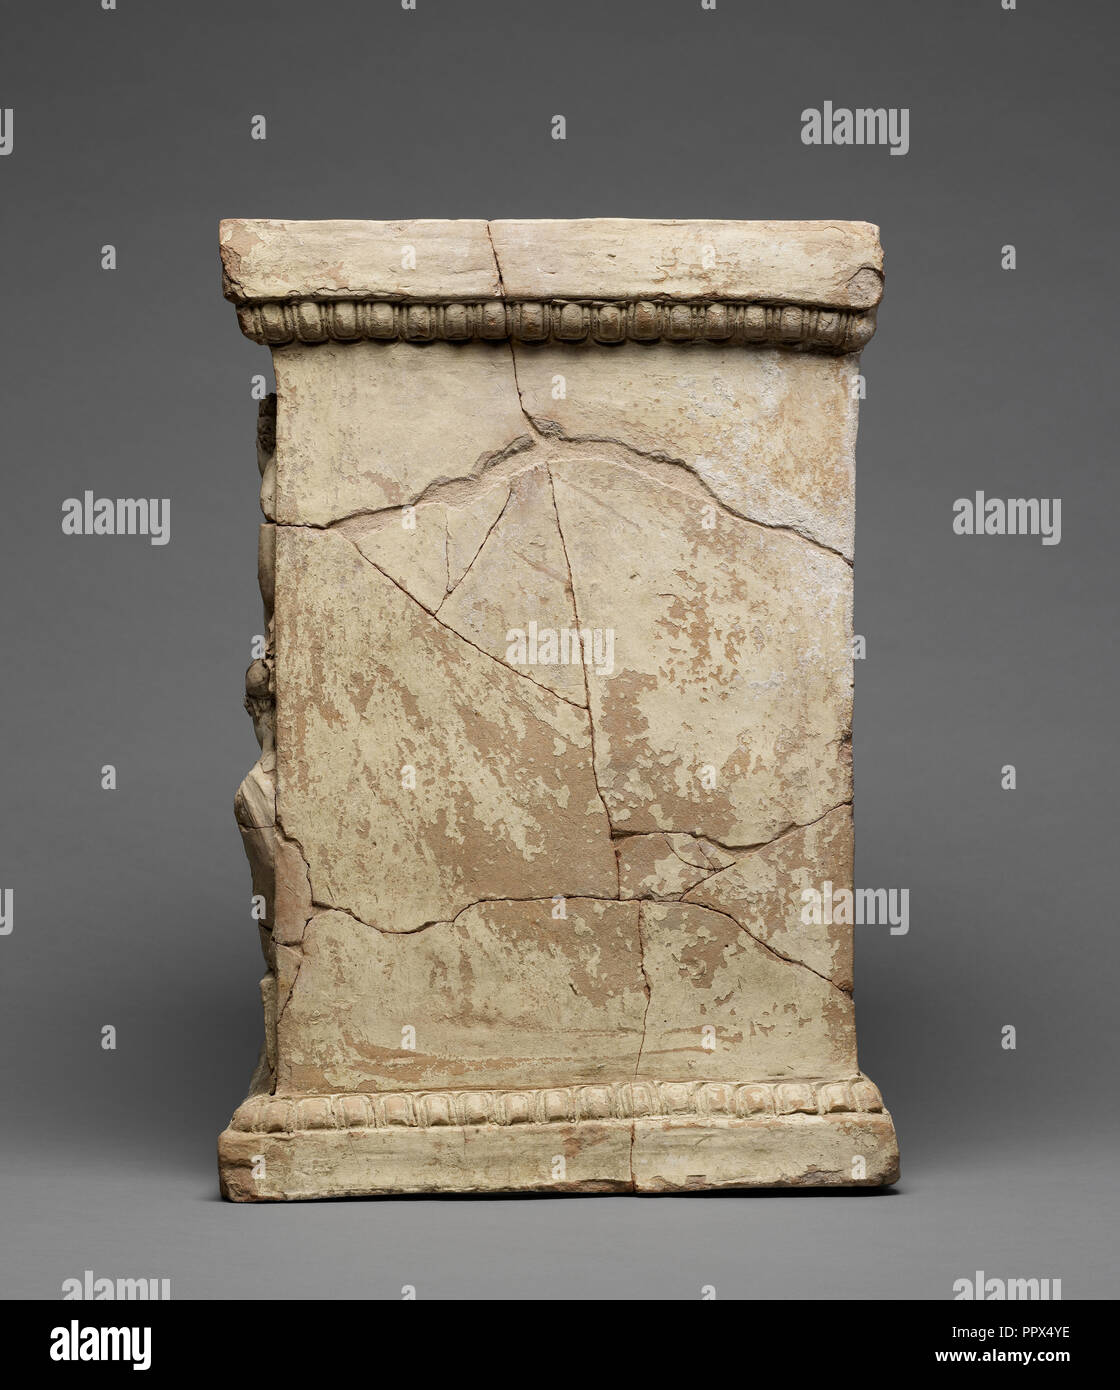 Altar with the Myth of Adonis; Calabria, Italy; 425 - 375 B.C; Terracotta with yellowish diluted clay, white slip and polychromy - Stock Image